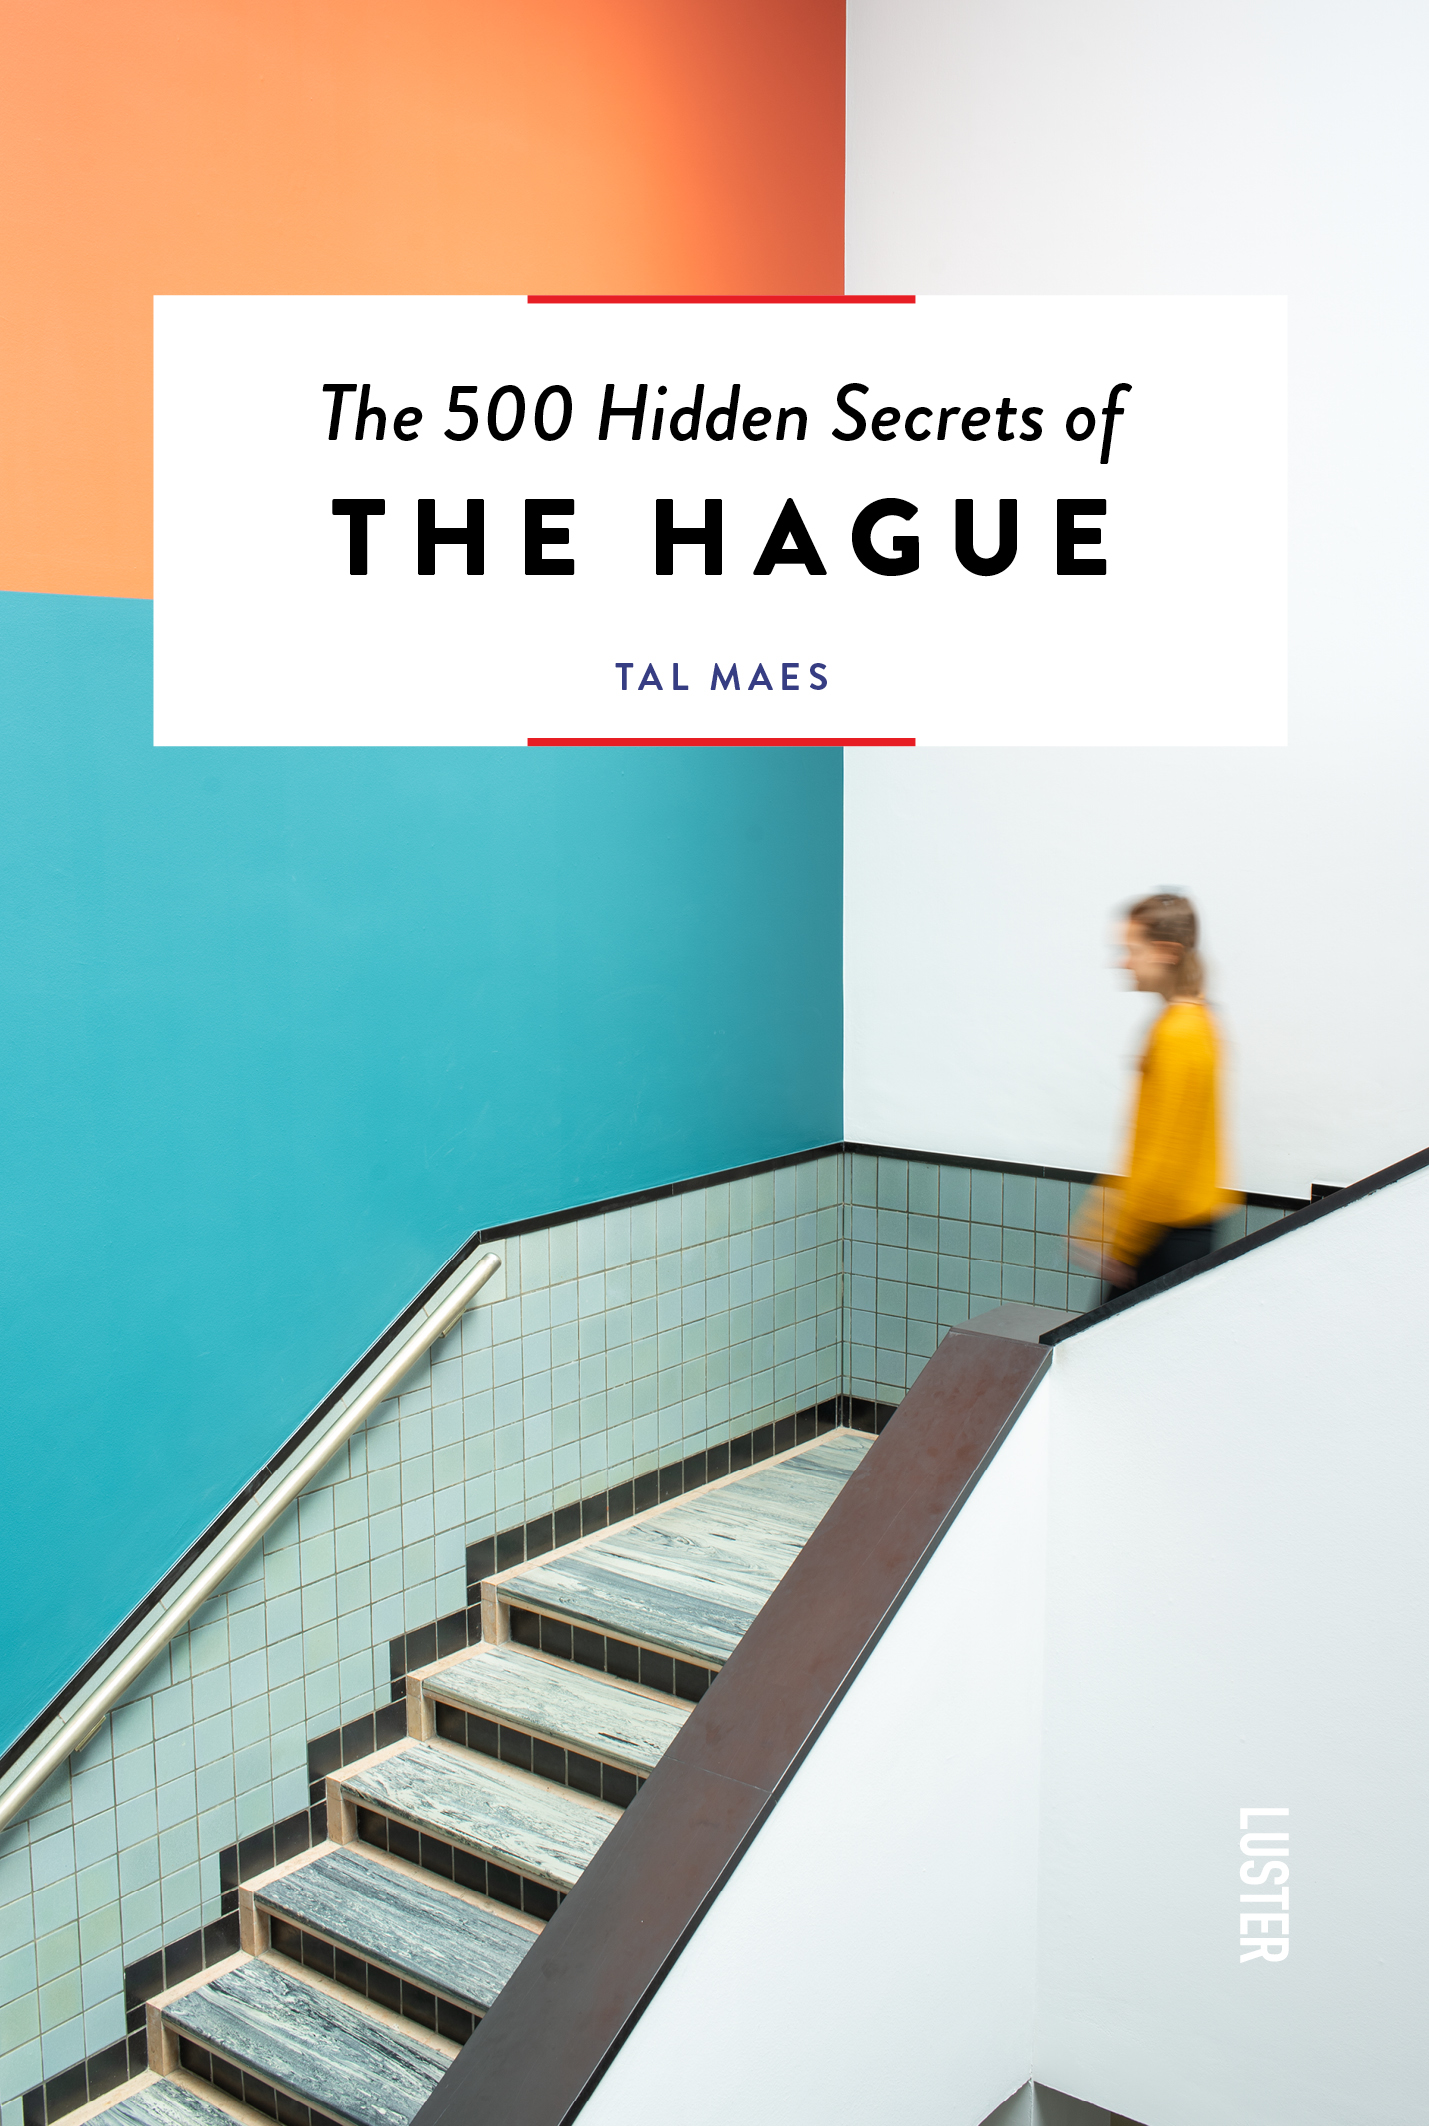 The 500 Hidden Secrets of The Hague